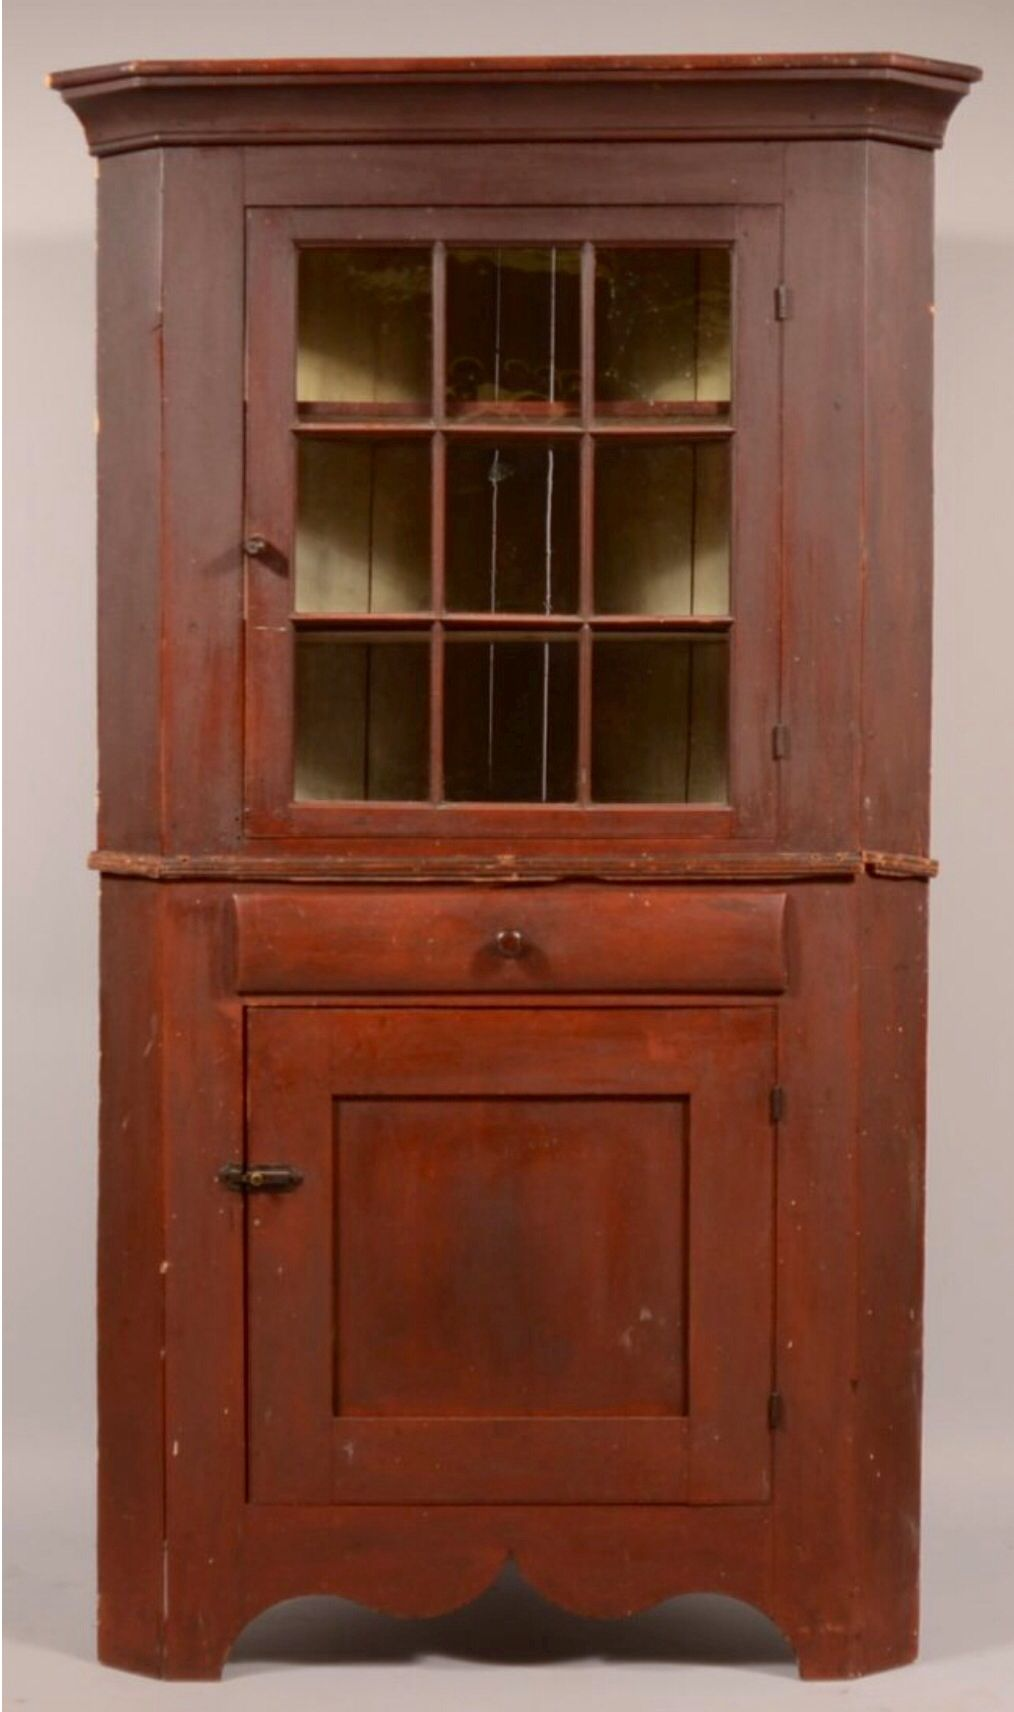 Conestoga Auction Co 6 1 13 Lot 269 Est 1k 2k Sold For 2400 Pennsylvania Country Federal Cherry Antique Cupboard Colonial Furniture Southern Furniture